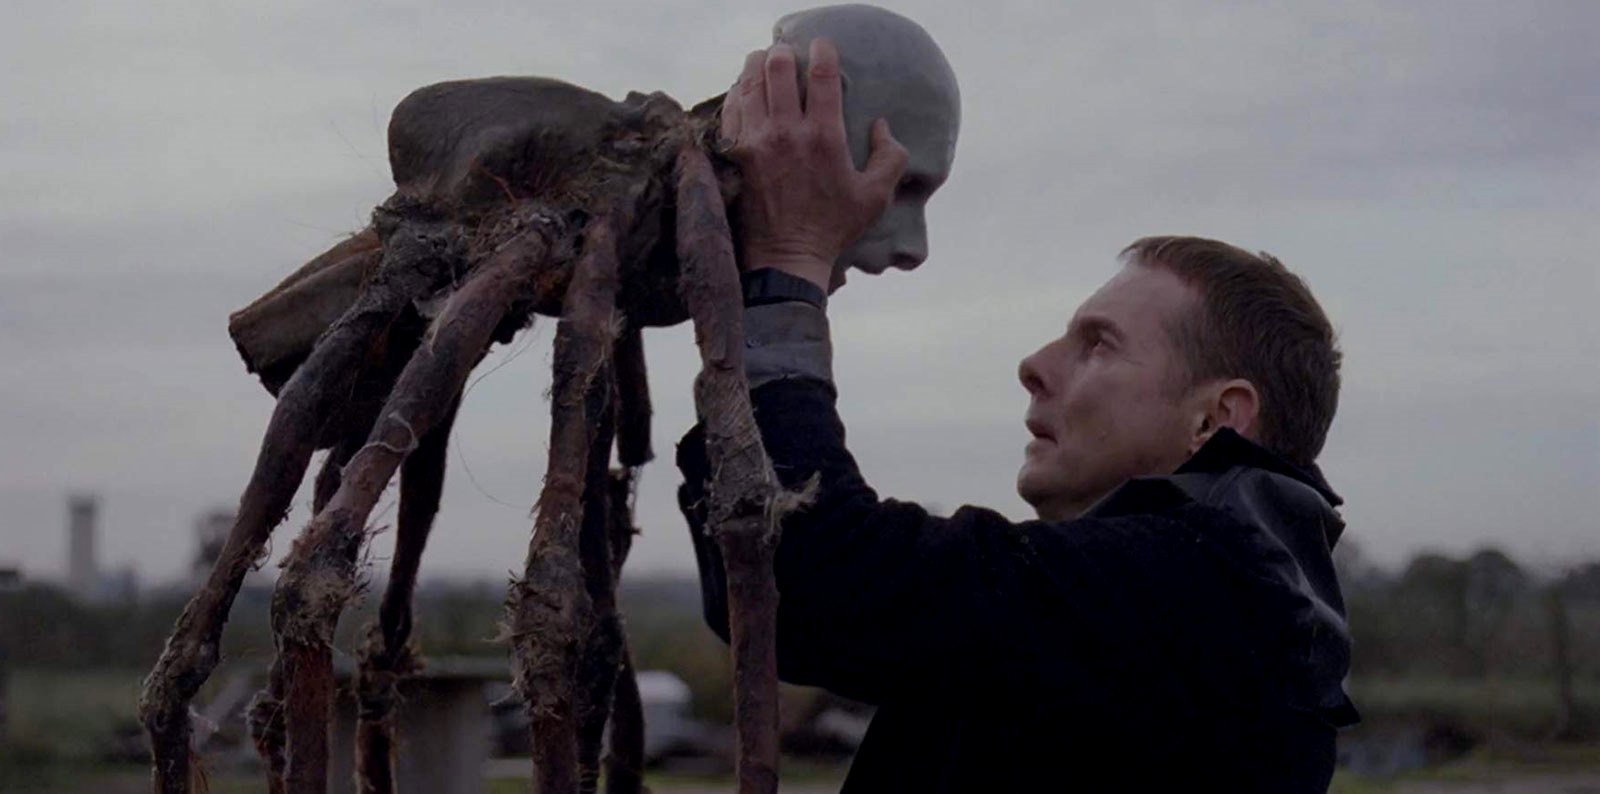 Sean Harris with puppet in Possum (2018)